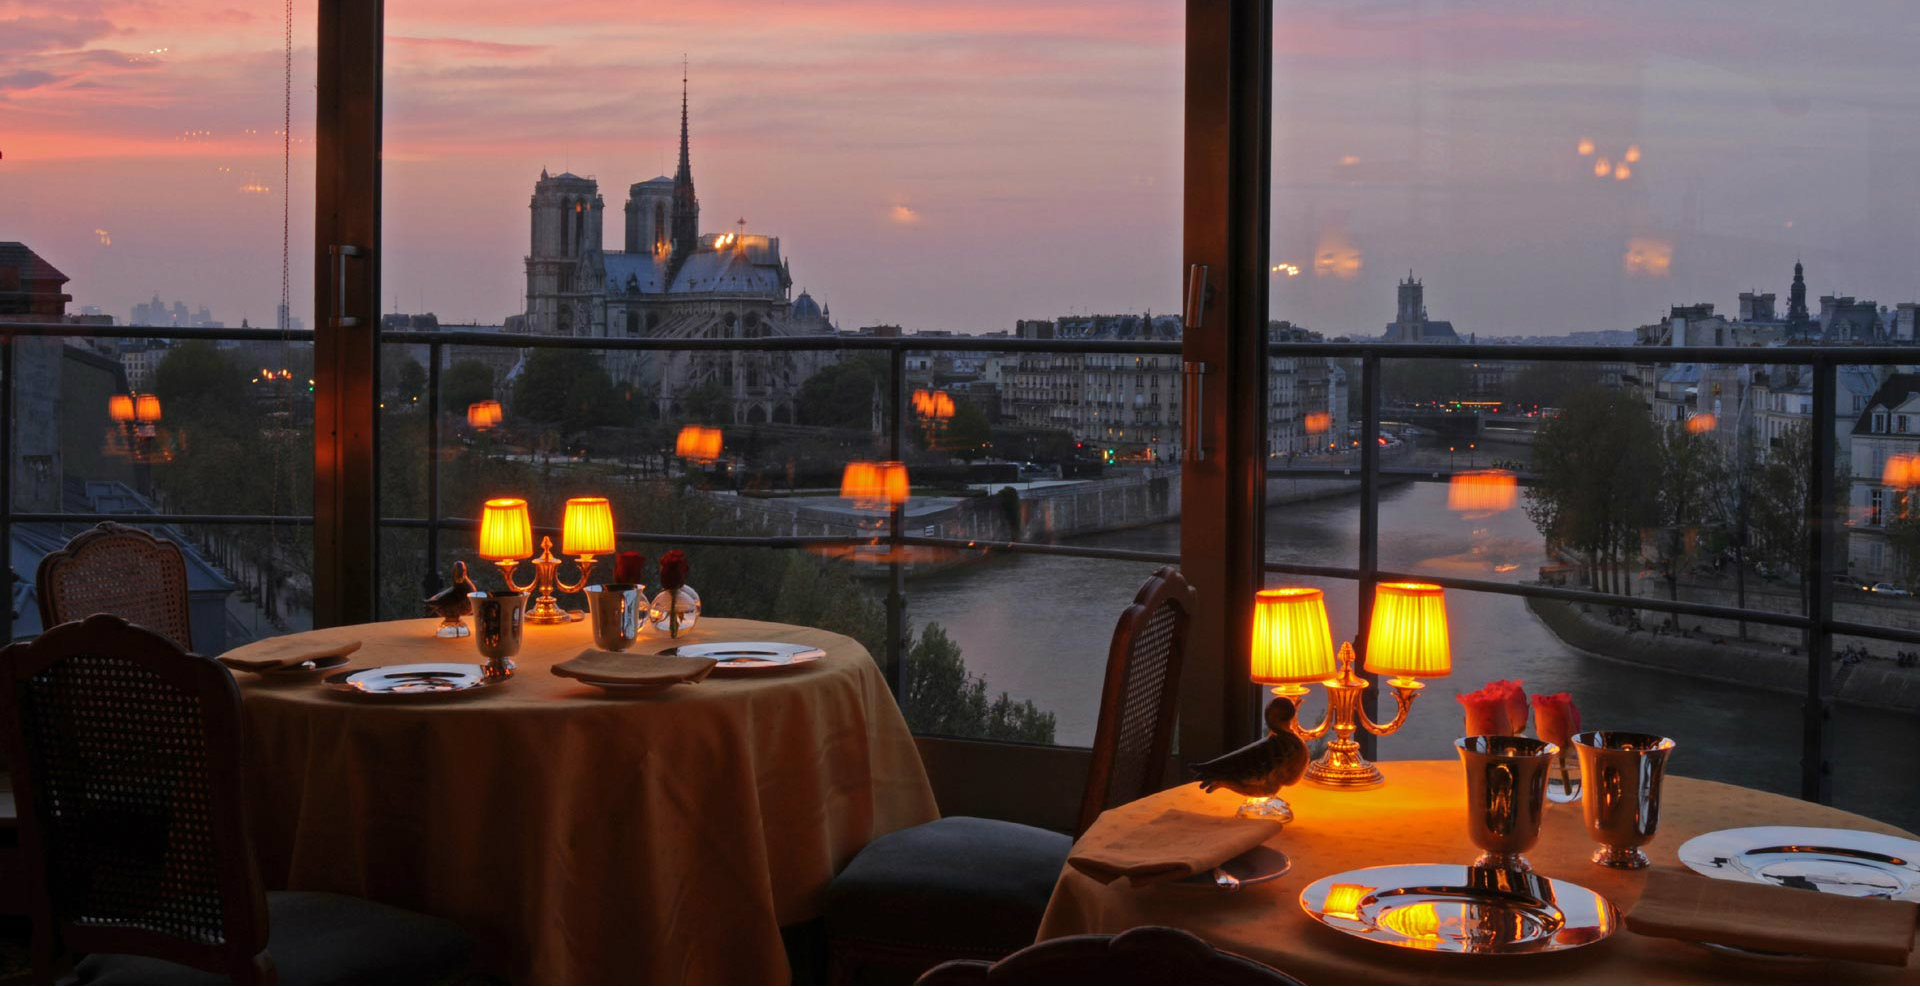 Find the best restaurants in Paris Bedroom Design Ideas Bedroom Design Ideas From Top Interior Designers Find the best restaurants in Paris cover Bedroom Design Ideas Bedroom Design Ideas From Top Interior Designers Find the best restaurants in Paris cover